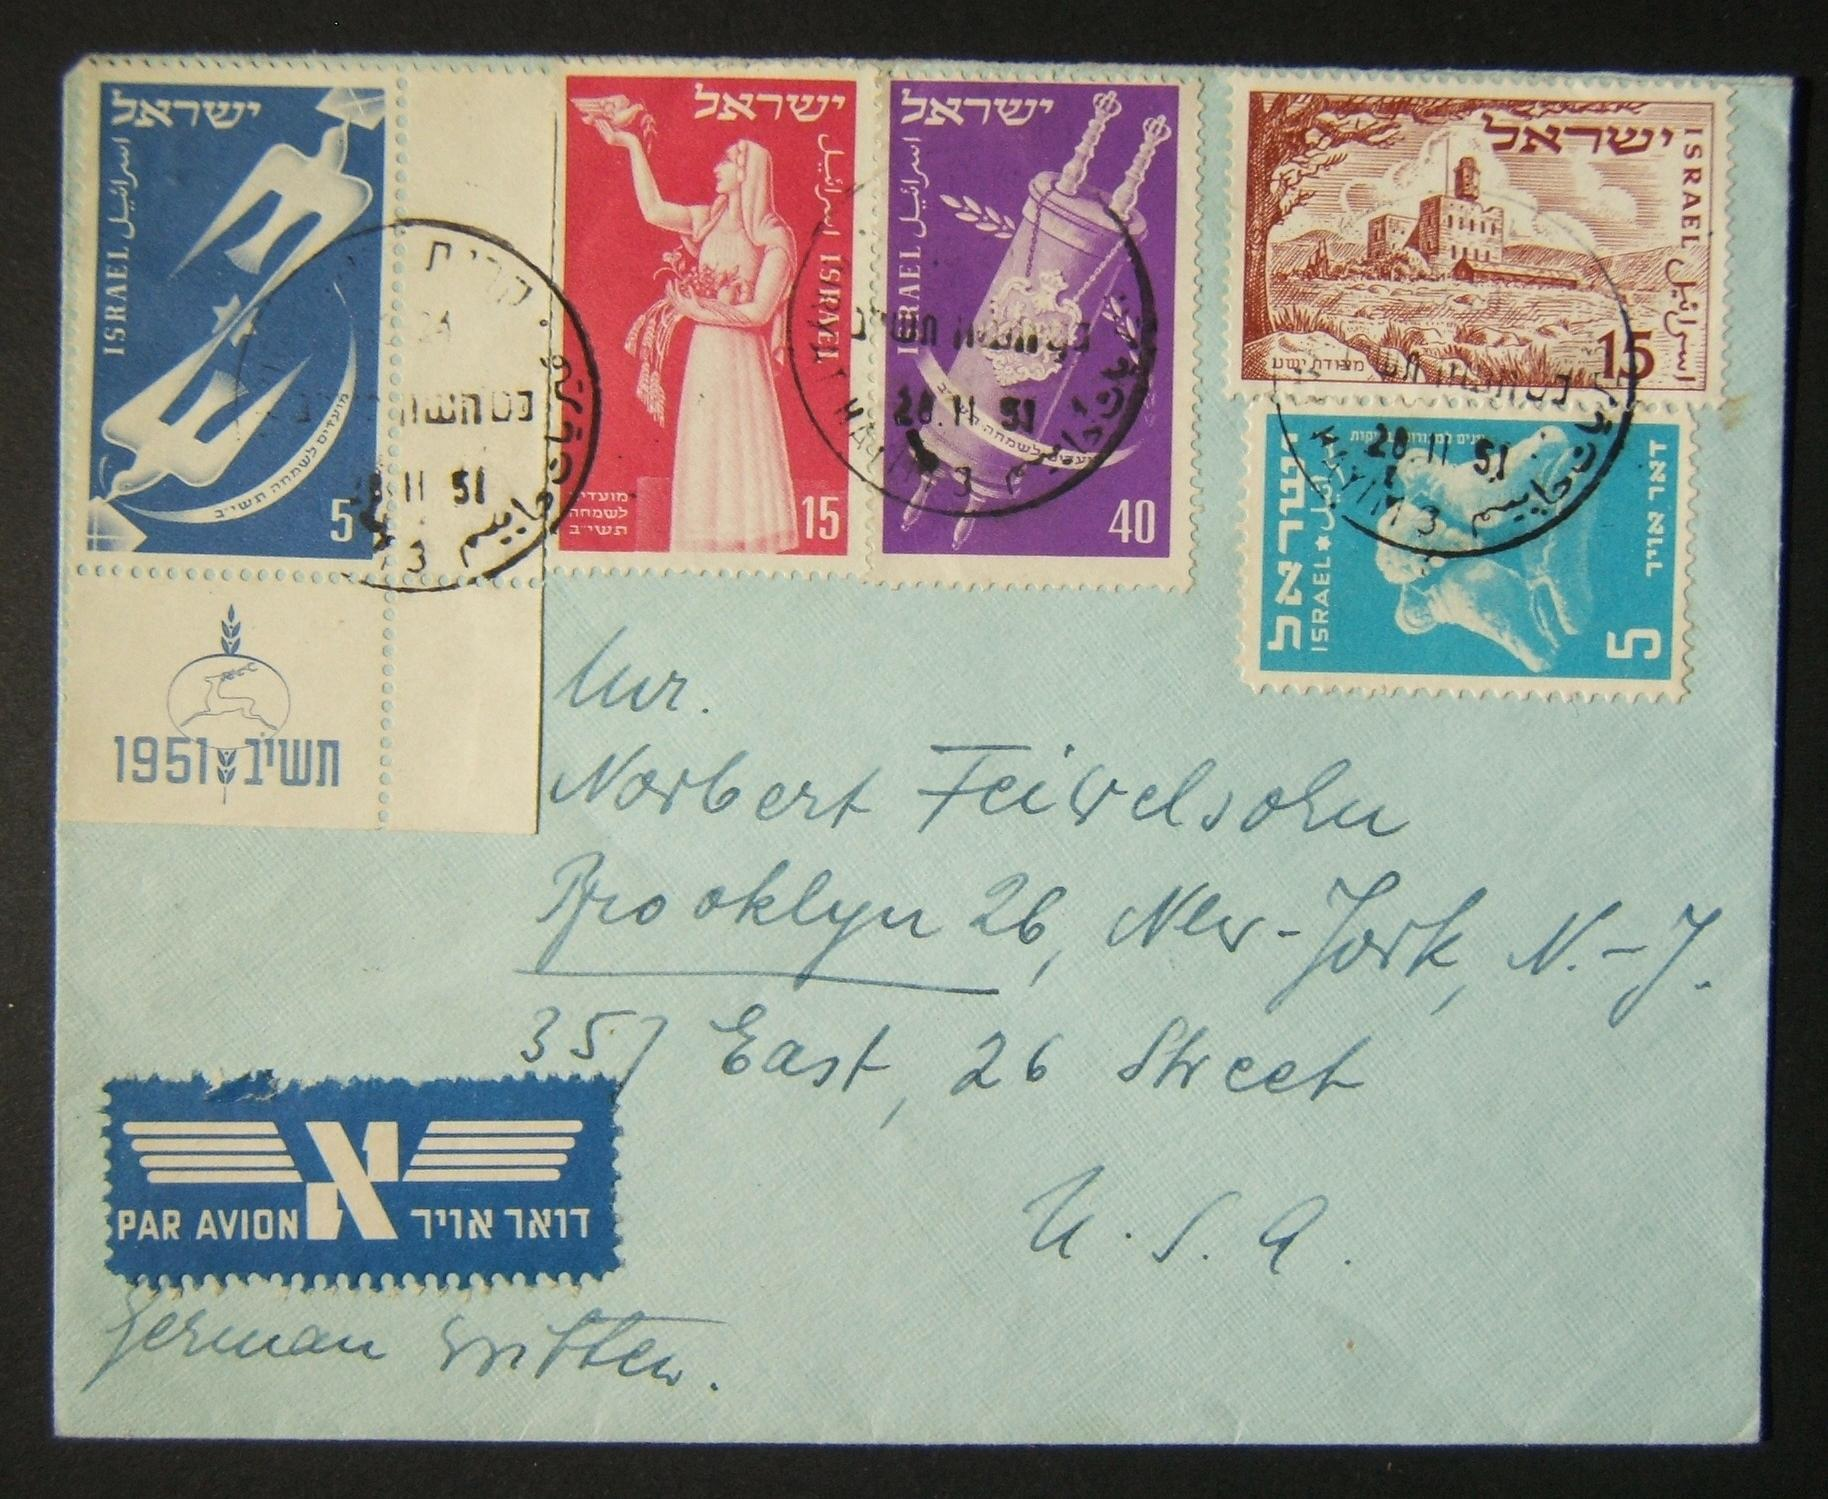 1951 New Year / PO's, rates & routes: 28-11-51 airmail cover ex QIRYAT HAYIM (return addressed Kirjat Motzkin) to NYC franked 80pr at the FA-2a period rate using mix of set 5pr tab